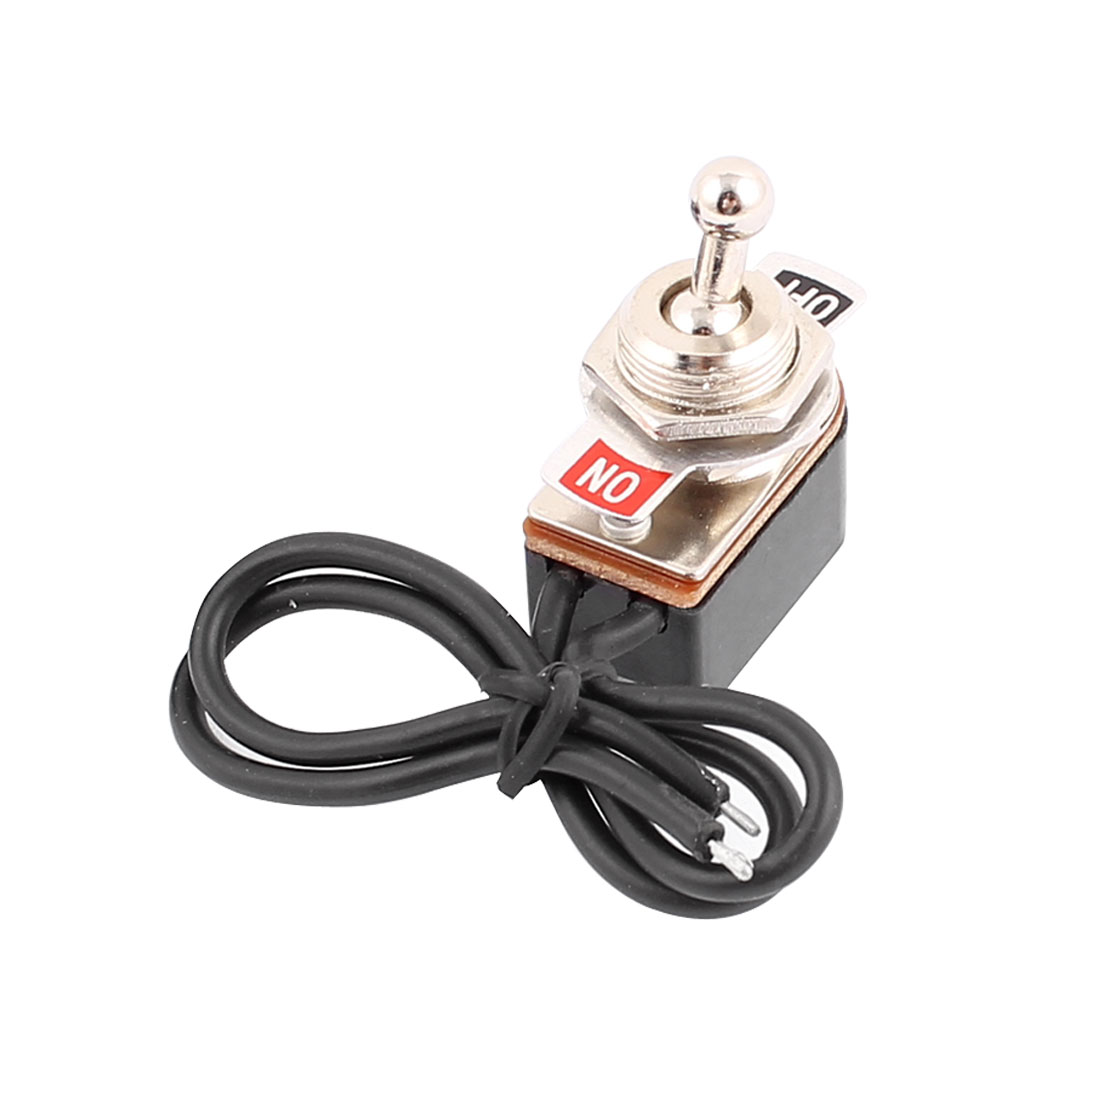 250VAC 3A 125VAC 6A SPST ON-OFF 2 Positions Self Locking Power Toggle Switch